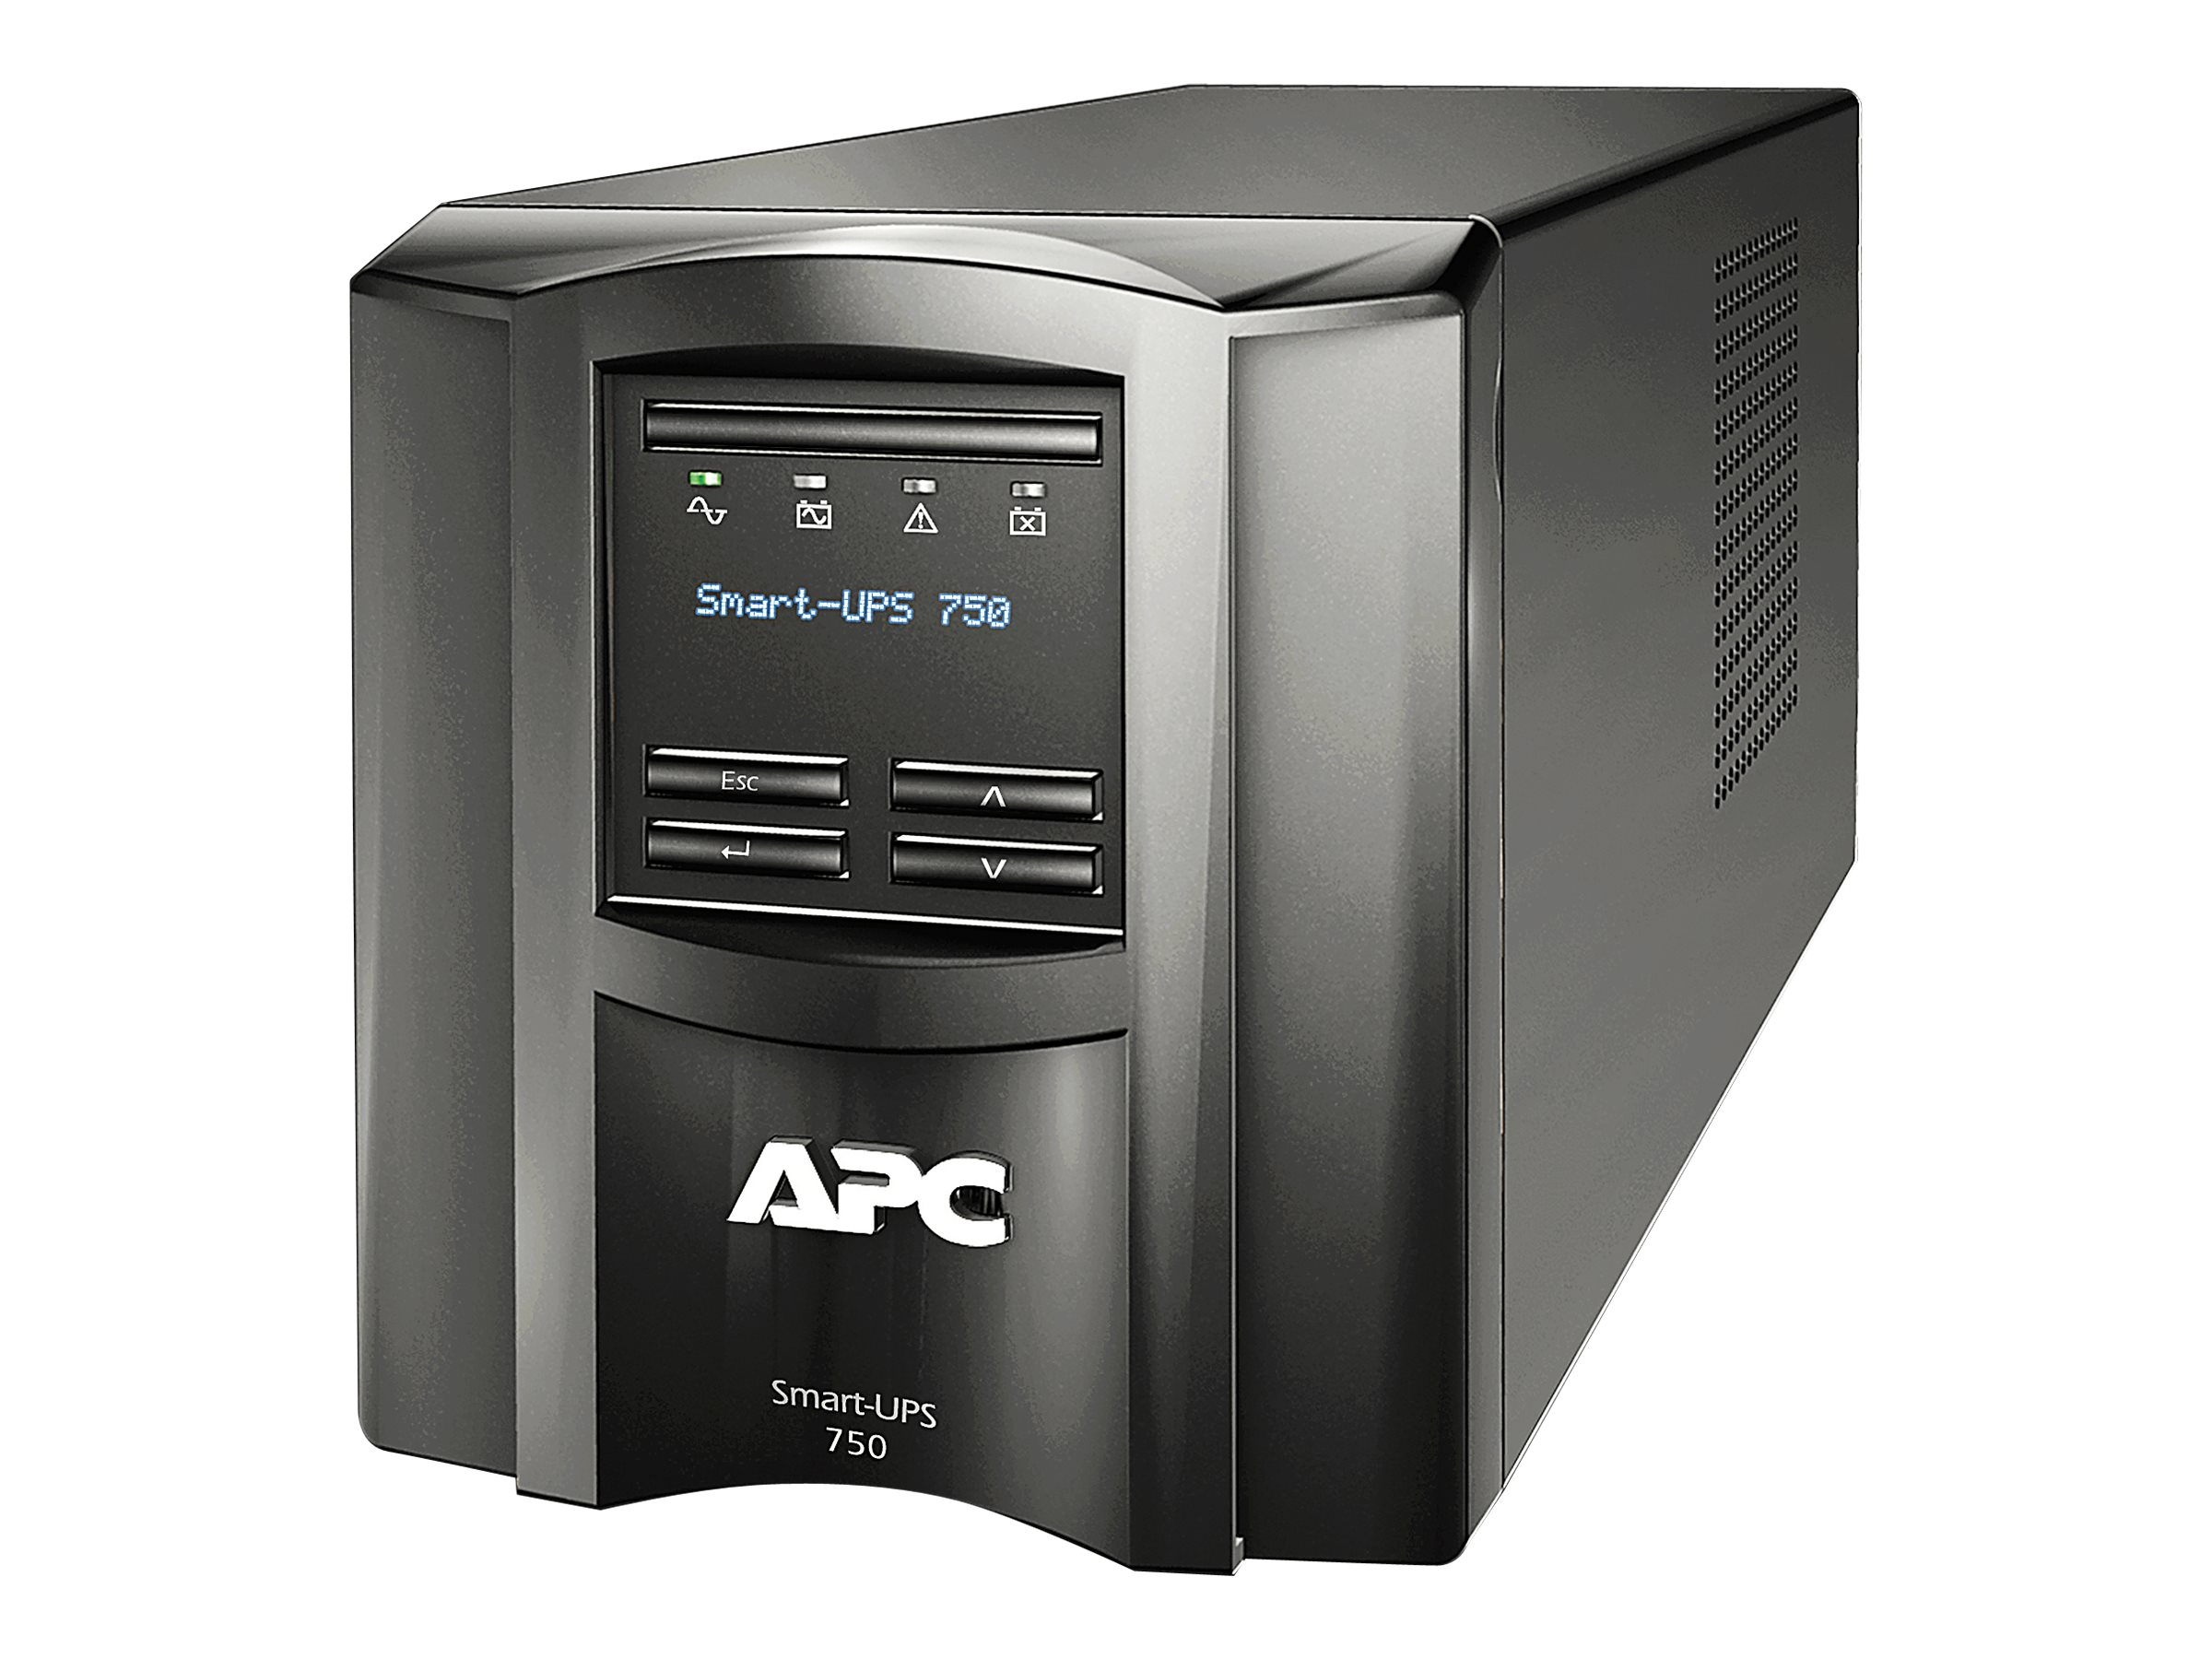 APC Smart-UPS 750VA 500W 120V LCD Tower UPS (6) 5-15R Outlets, SMT750US